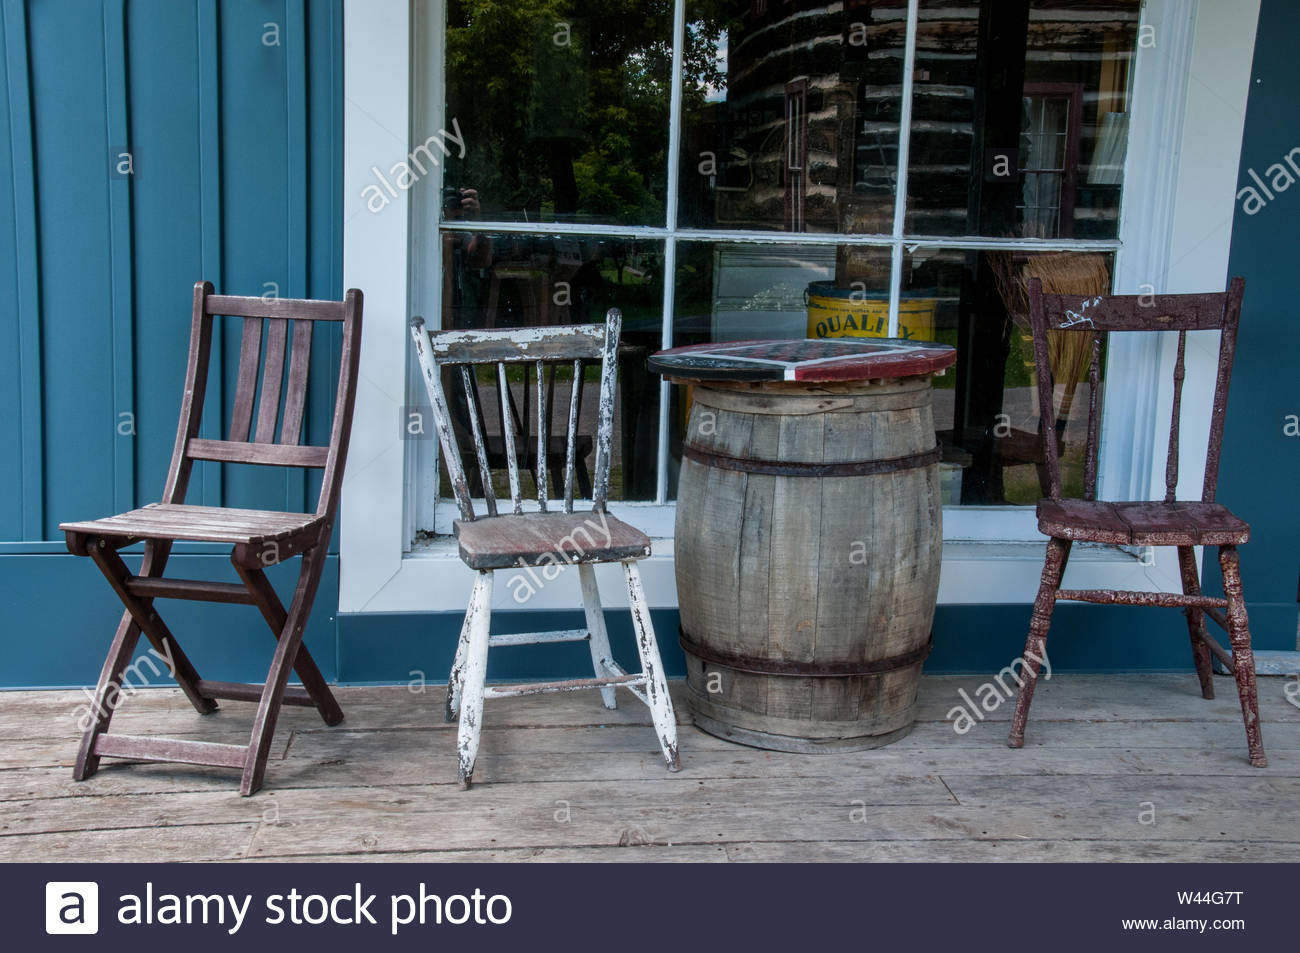 Fantastic Old Wooden Barrel Table And Chairs Outside Store Window Andrewgaddart Wooden Chair Designs For Living Room Andrewgaddartcom